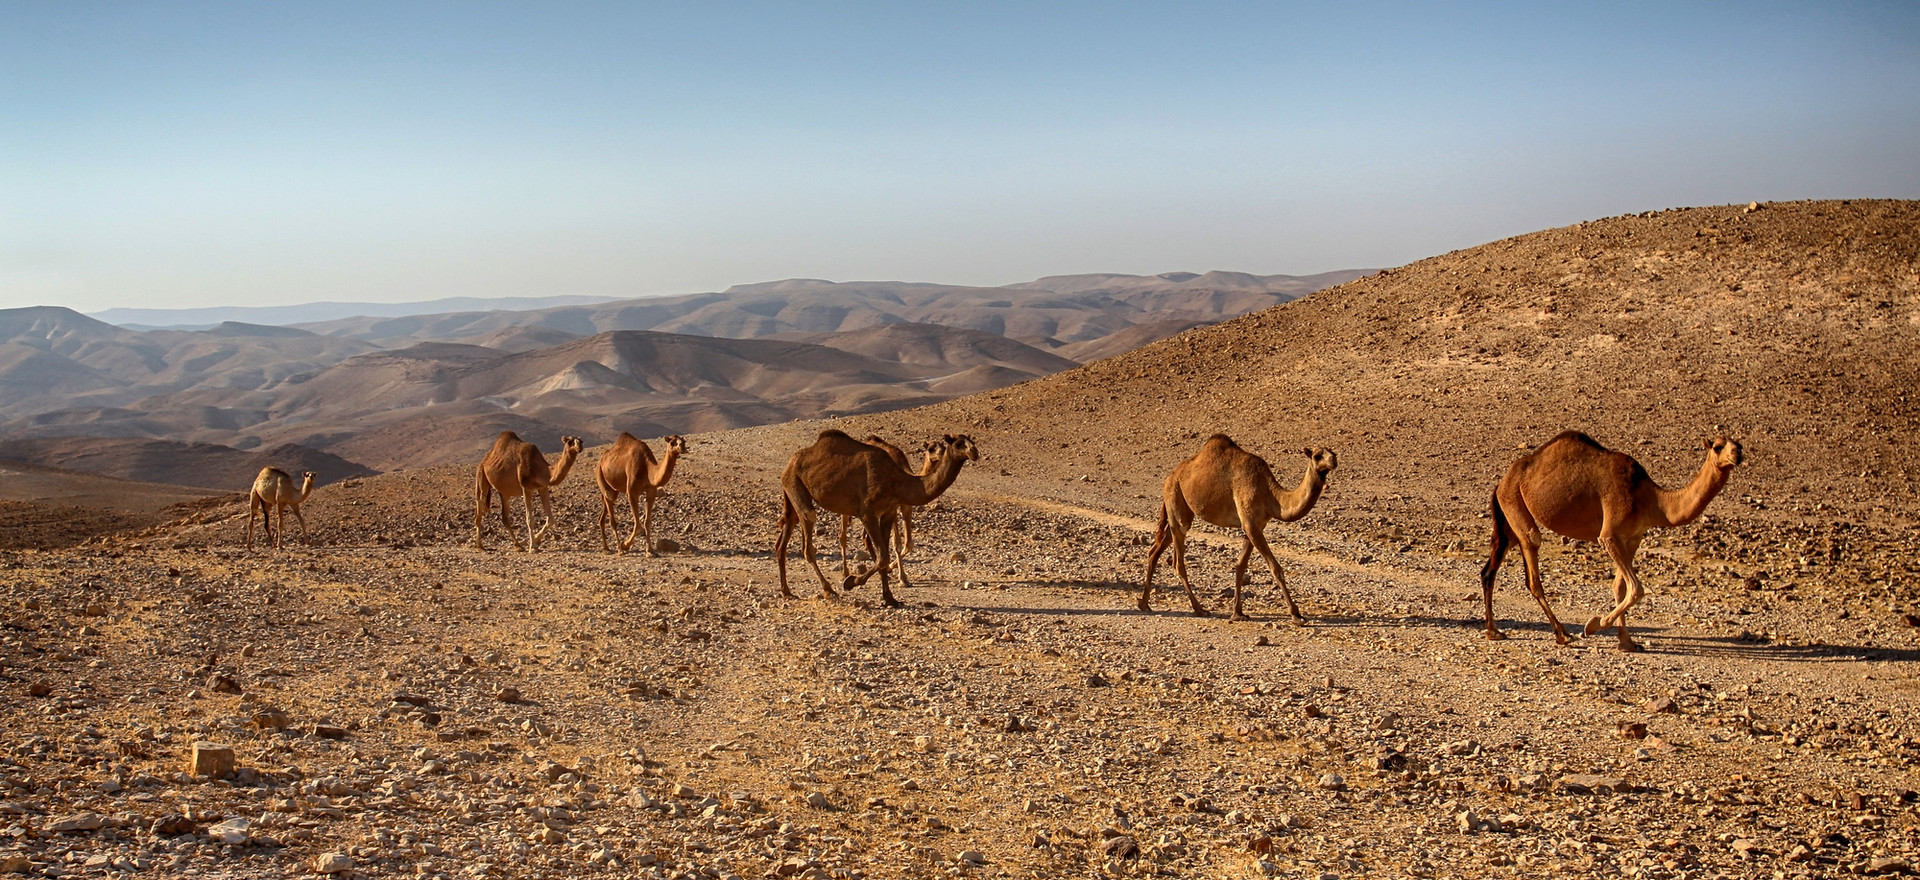 Israeli Deserts - Part 2: The Endlessness of the Negev Desert